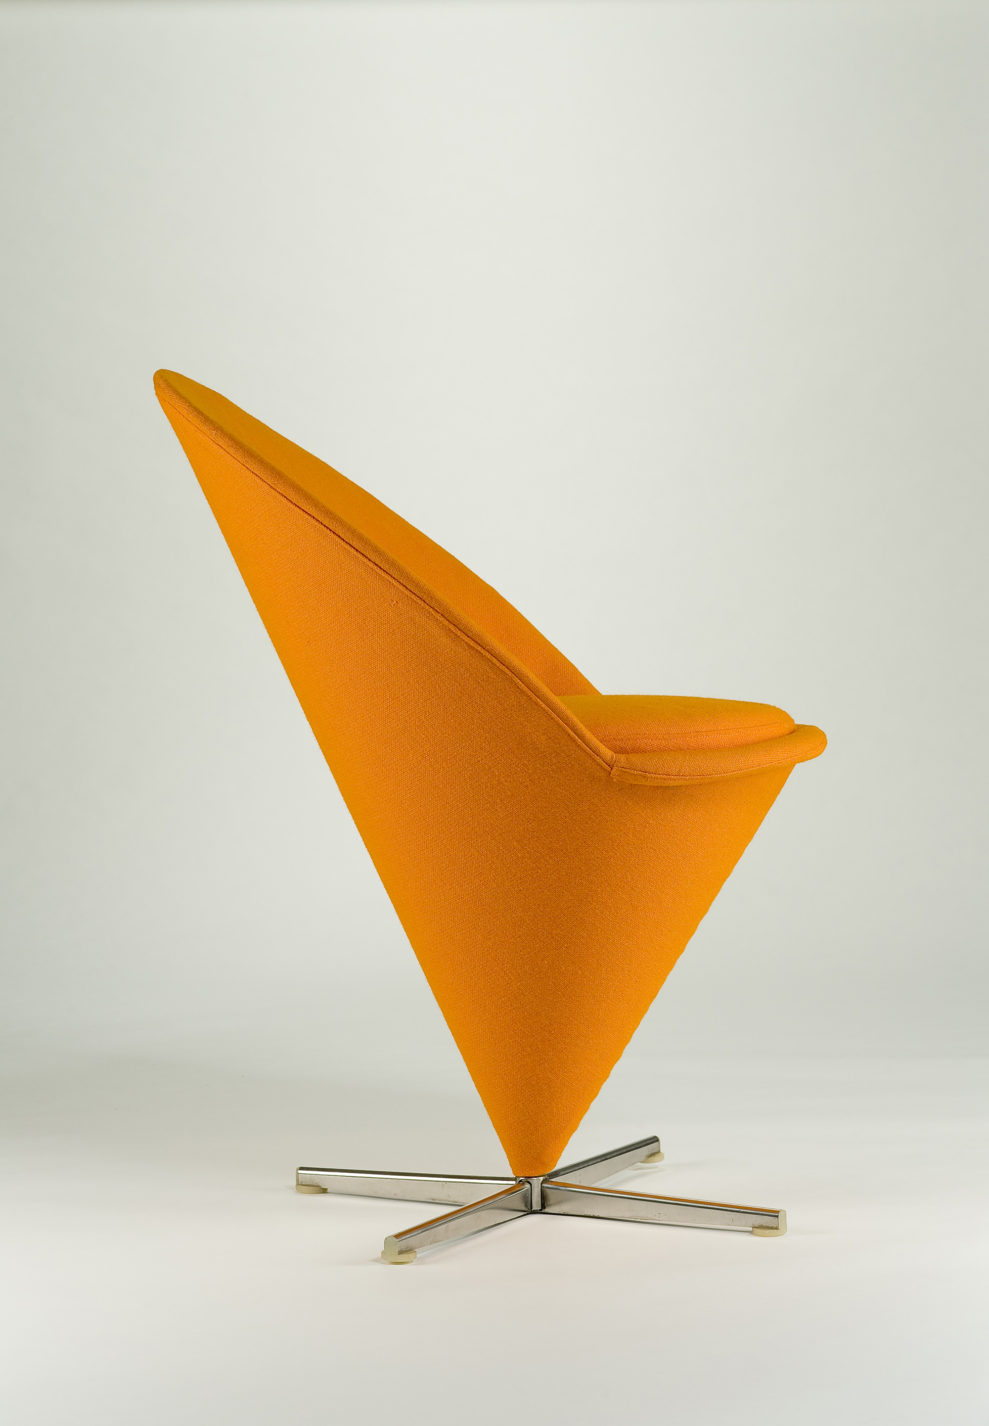 Bright orange conical chair with a crisscross steel base.